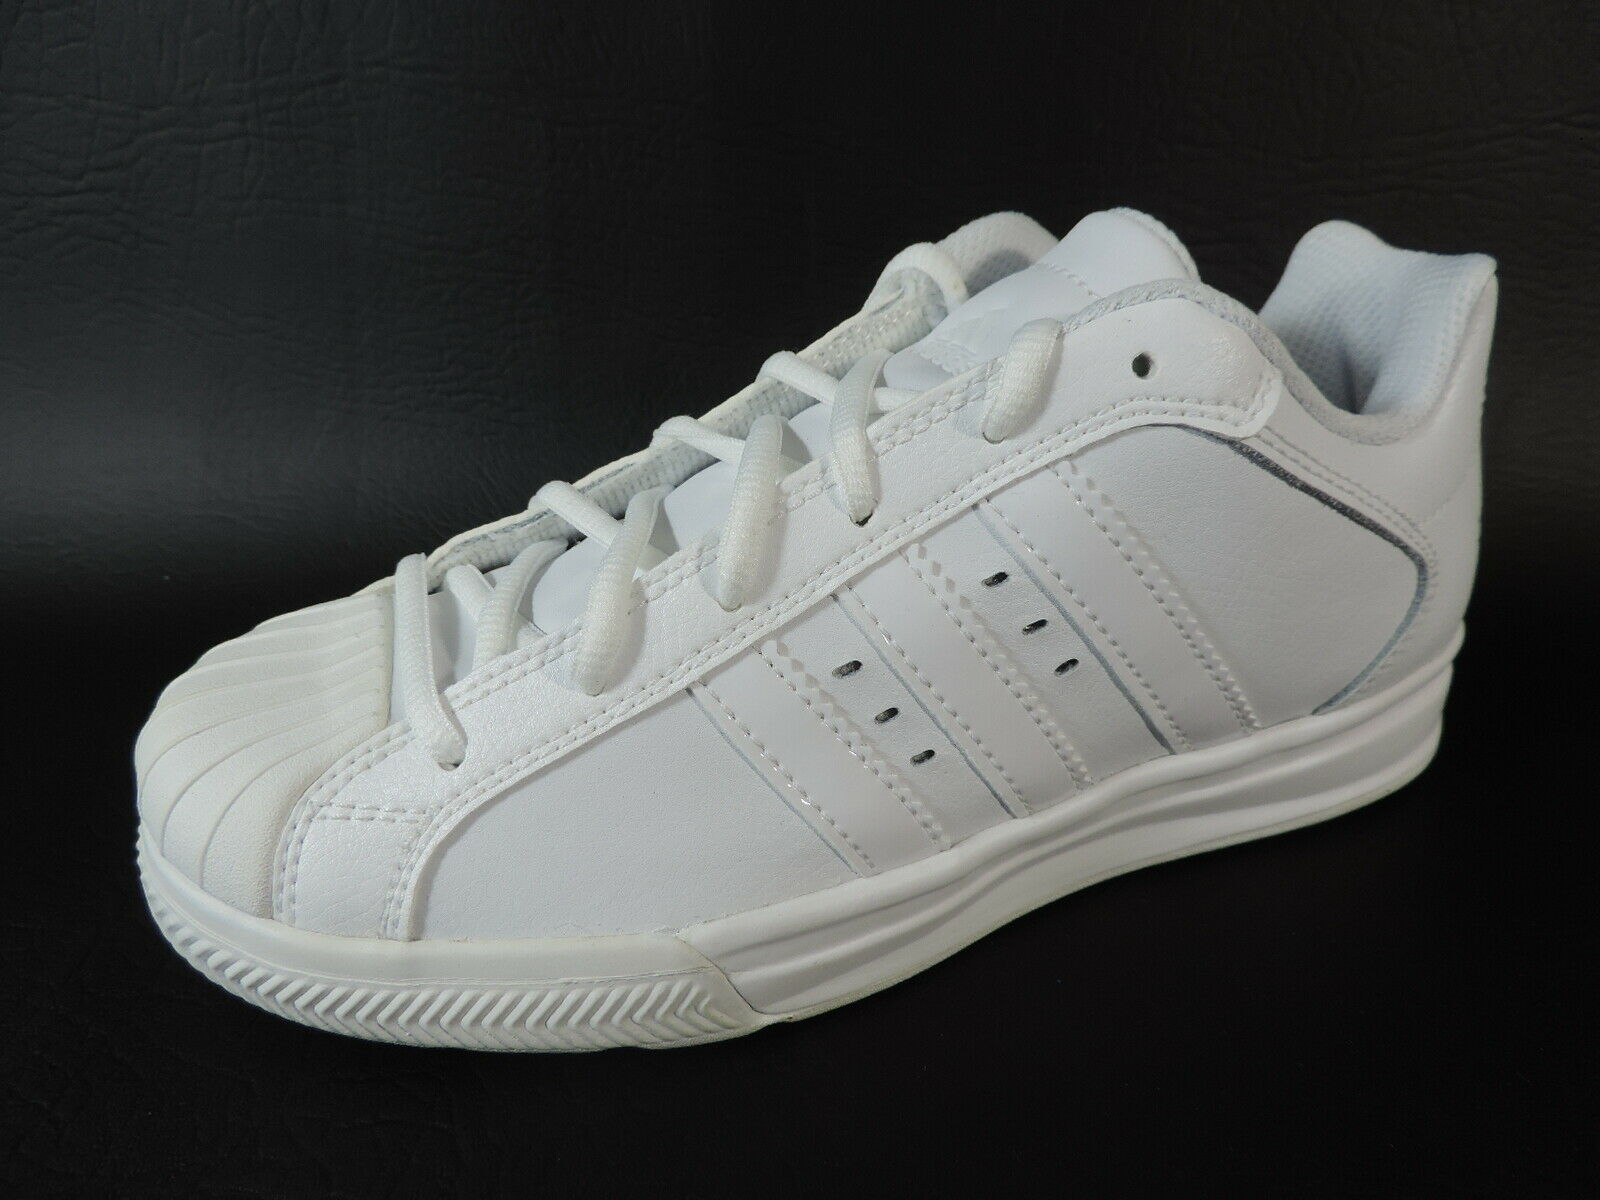 Adidas Boys Shoes Superstar Vulcano K Sneakers Casuals White Leather G24469